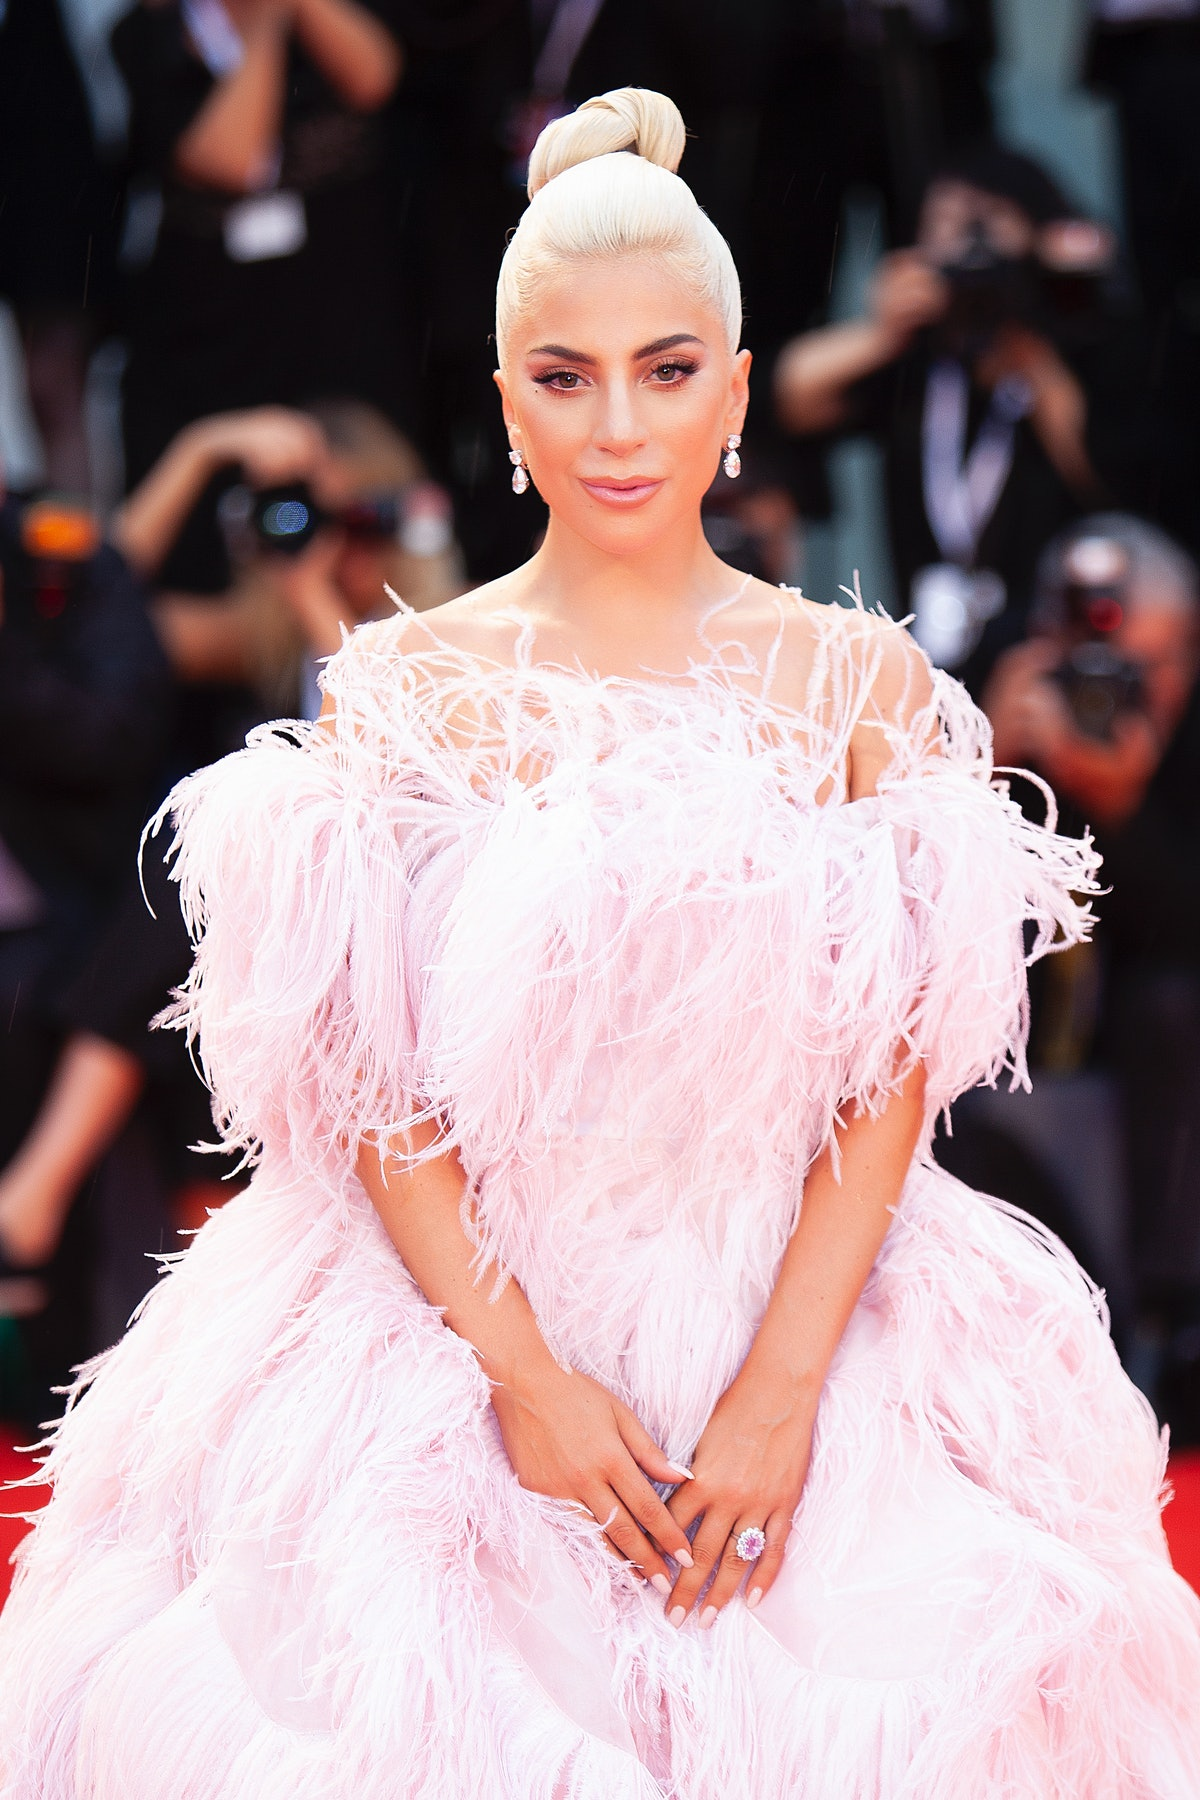 VENICE, ITALY - AUGUST 31: Lady Gaga walks the red carpet ahead of the 'A Star Is Born' screening du...